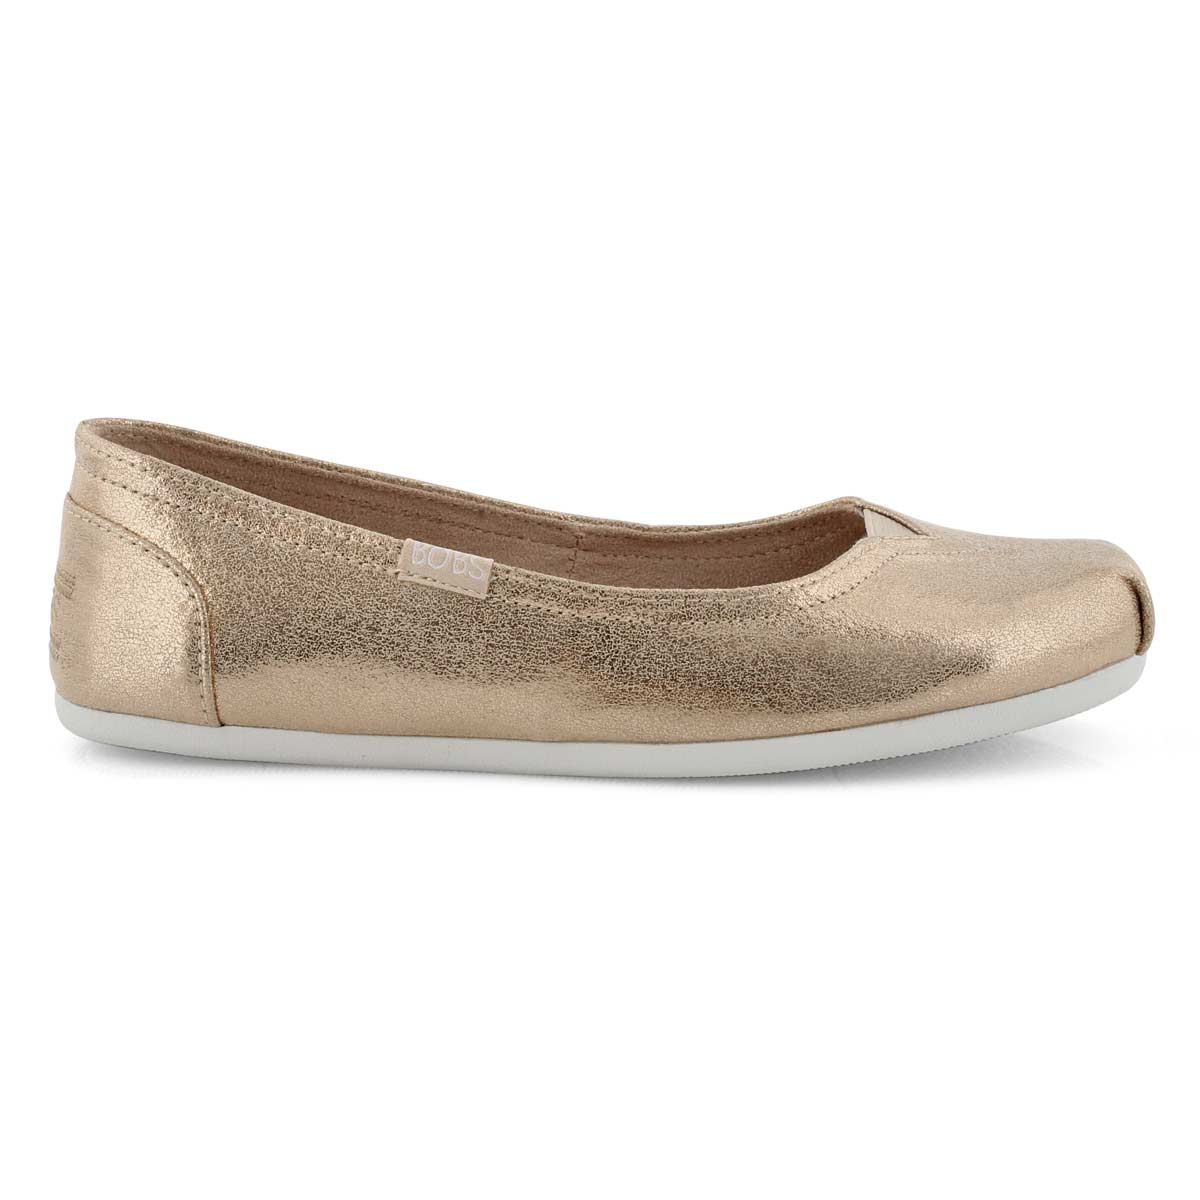 Women's BOBS PLUSH champagne slip ons shoes